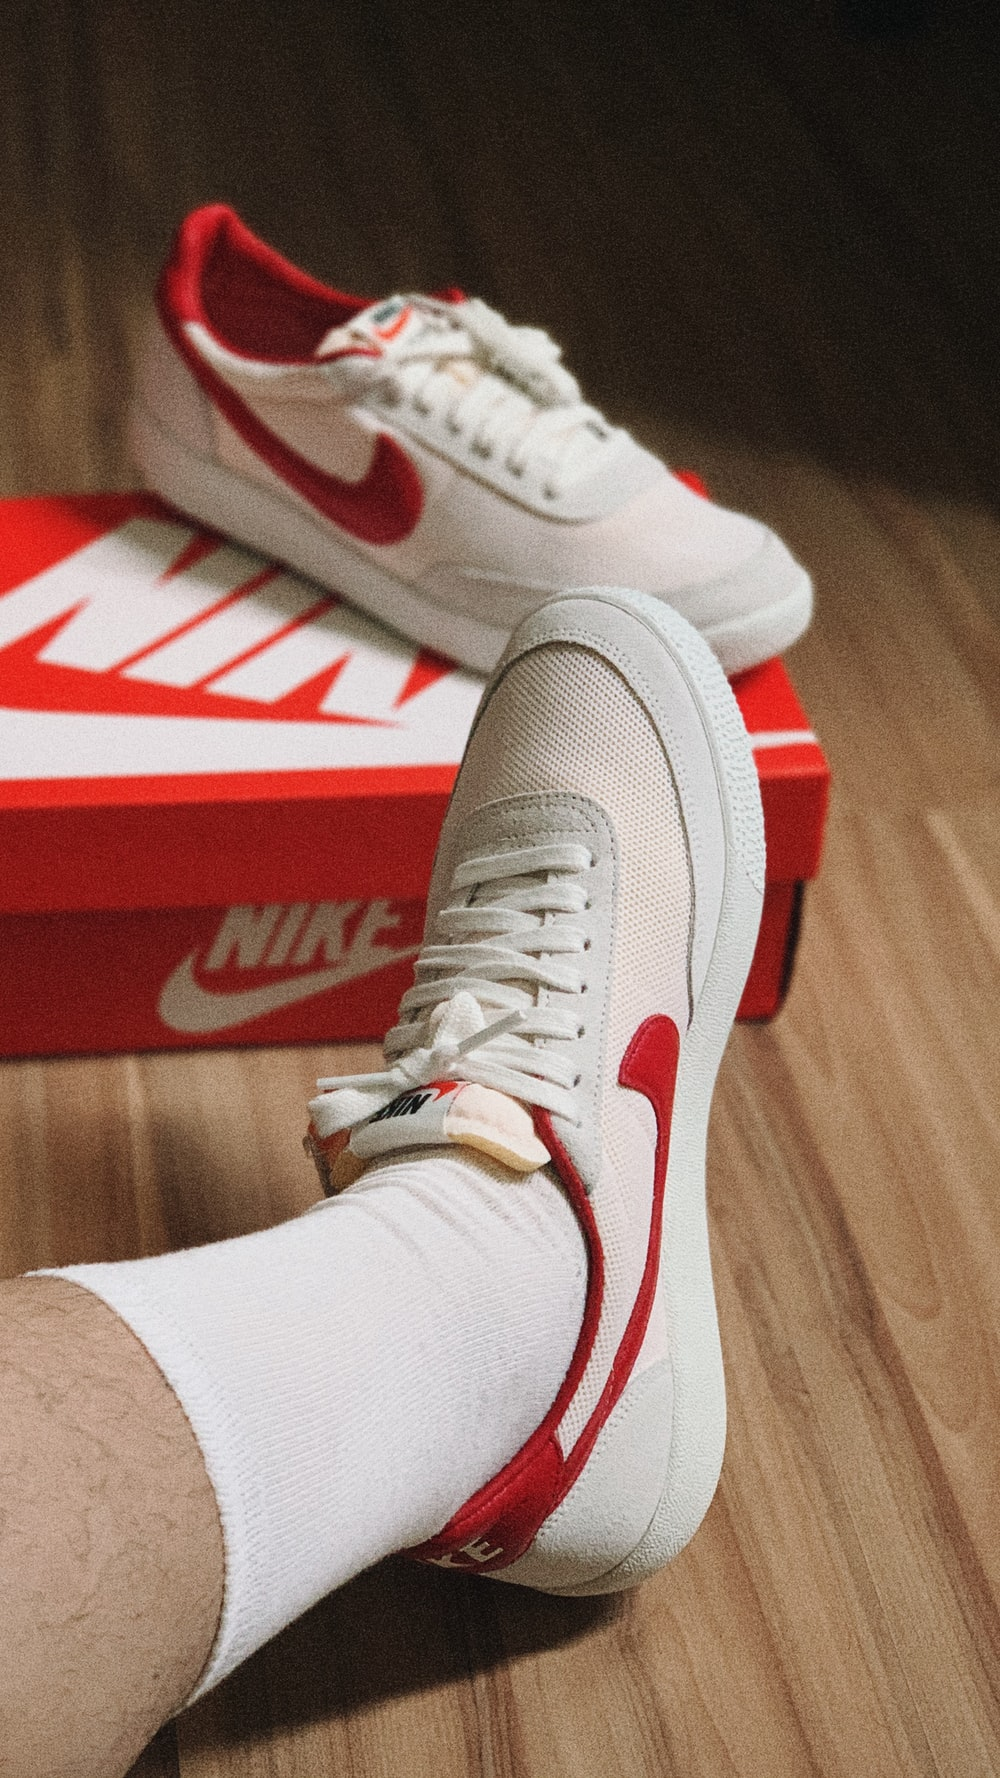 person wearing white and red nike athletic shoes